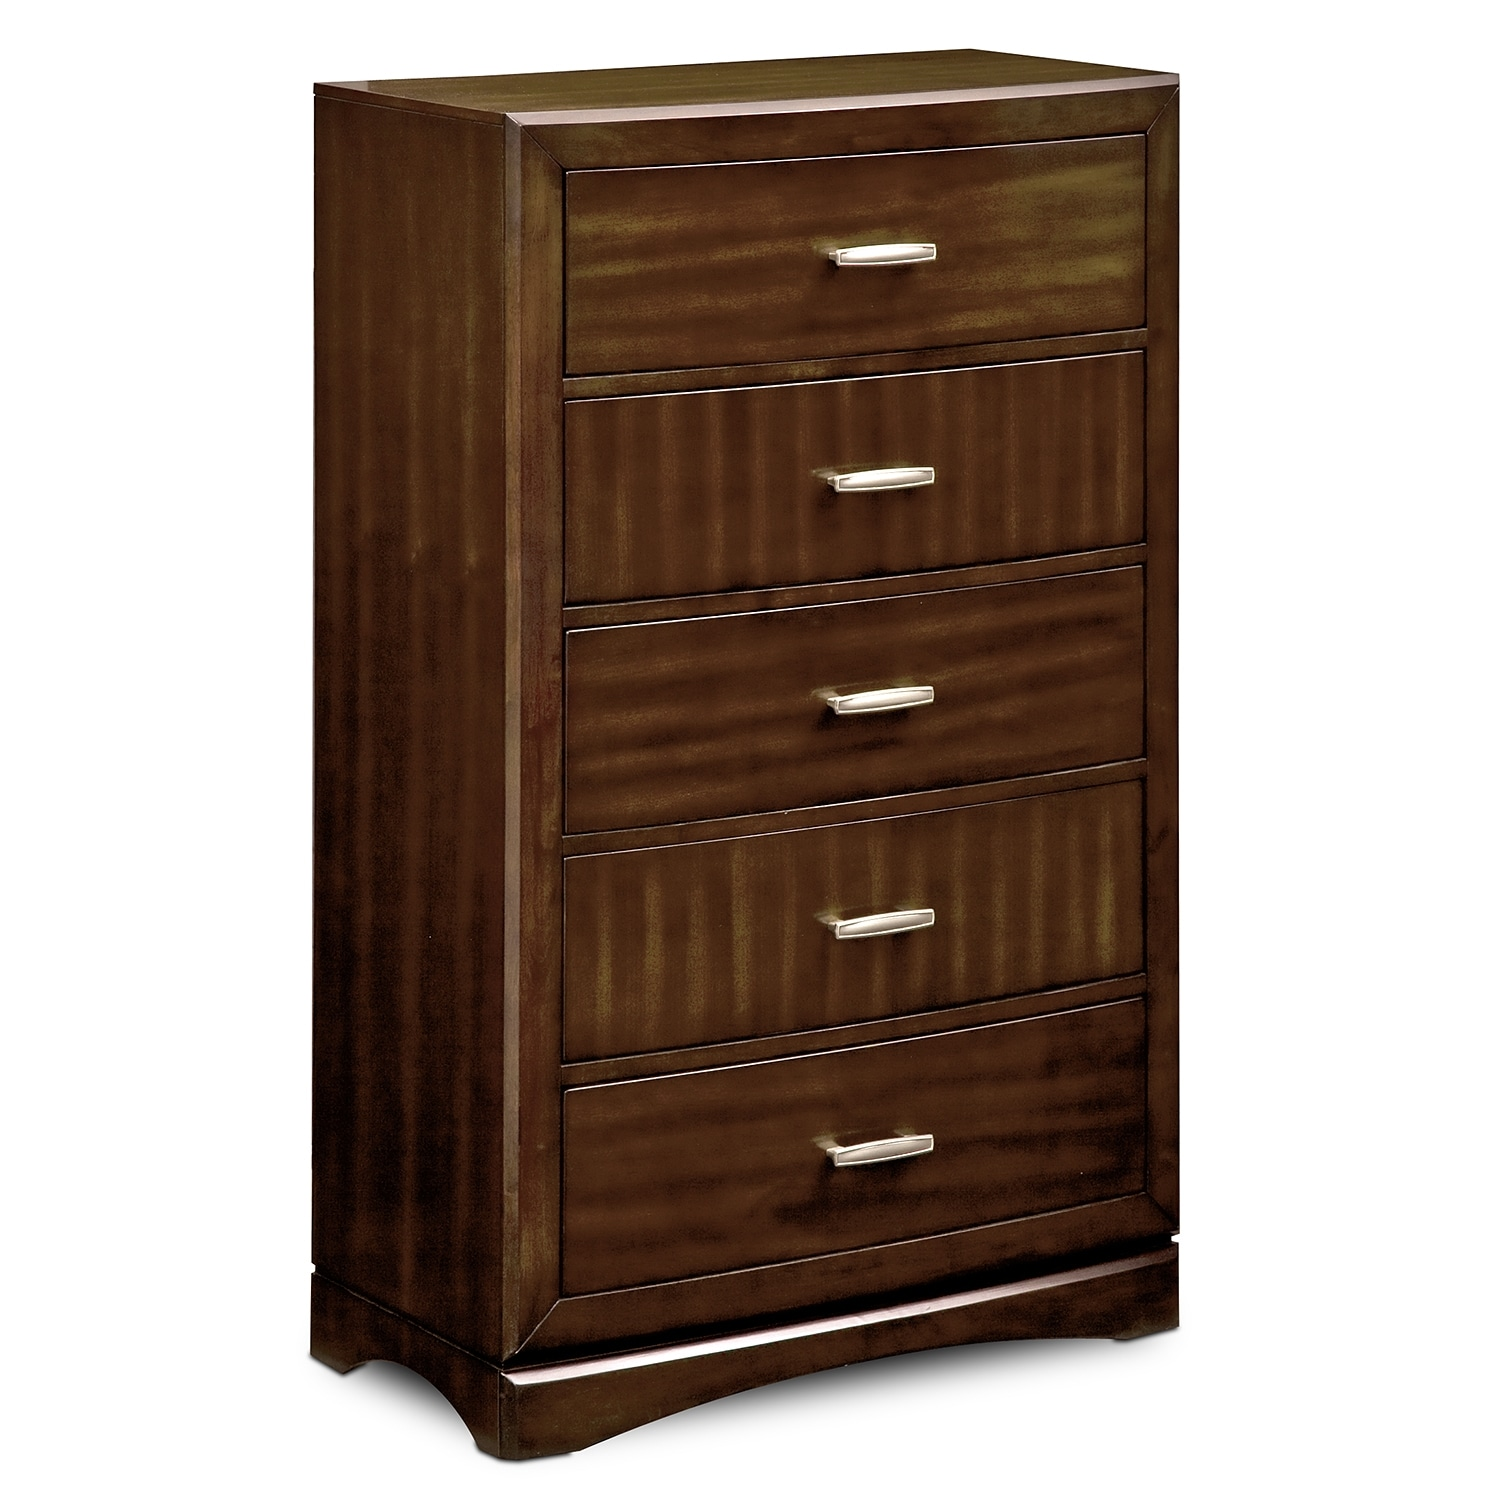 Bedroom Furniture - Claremont Chest